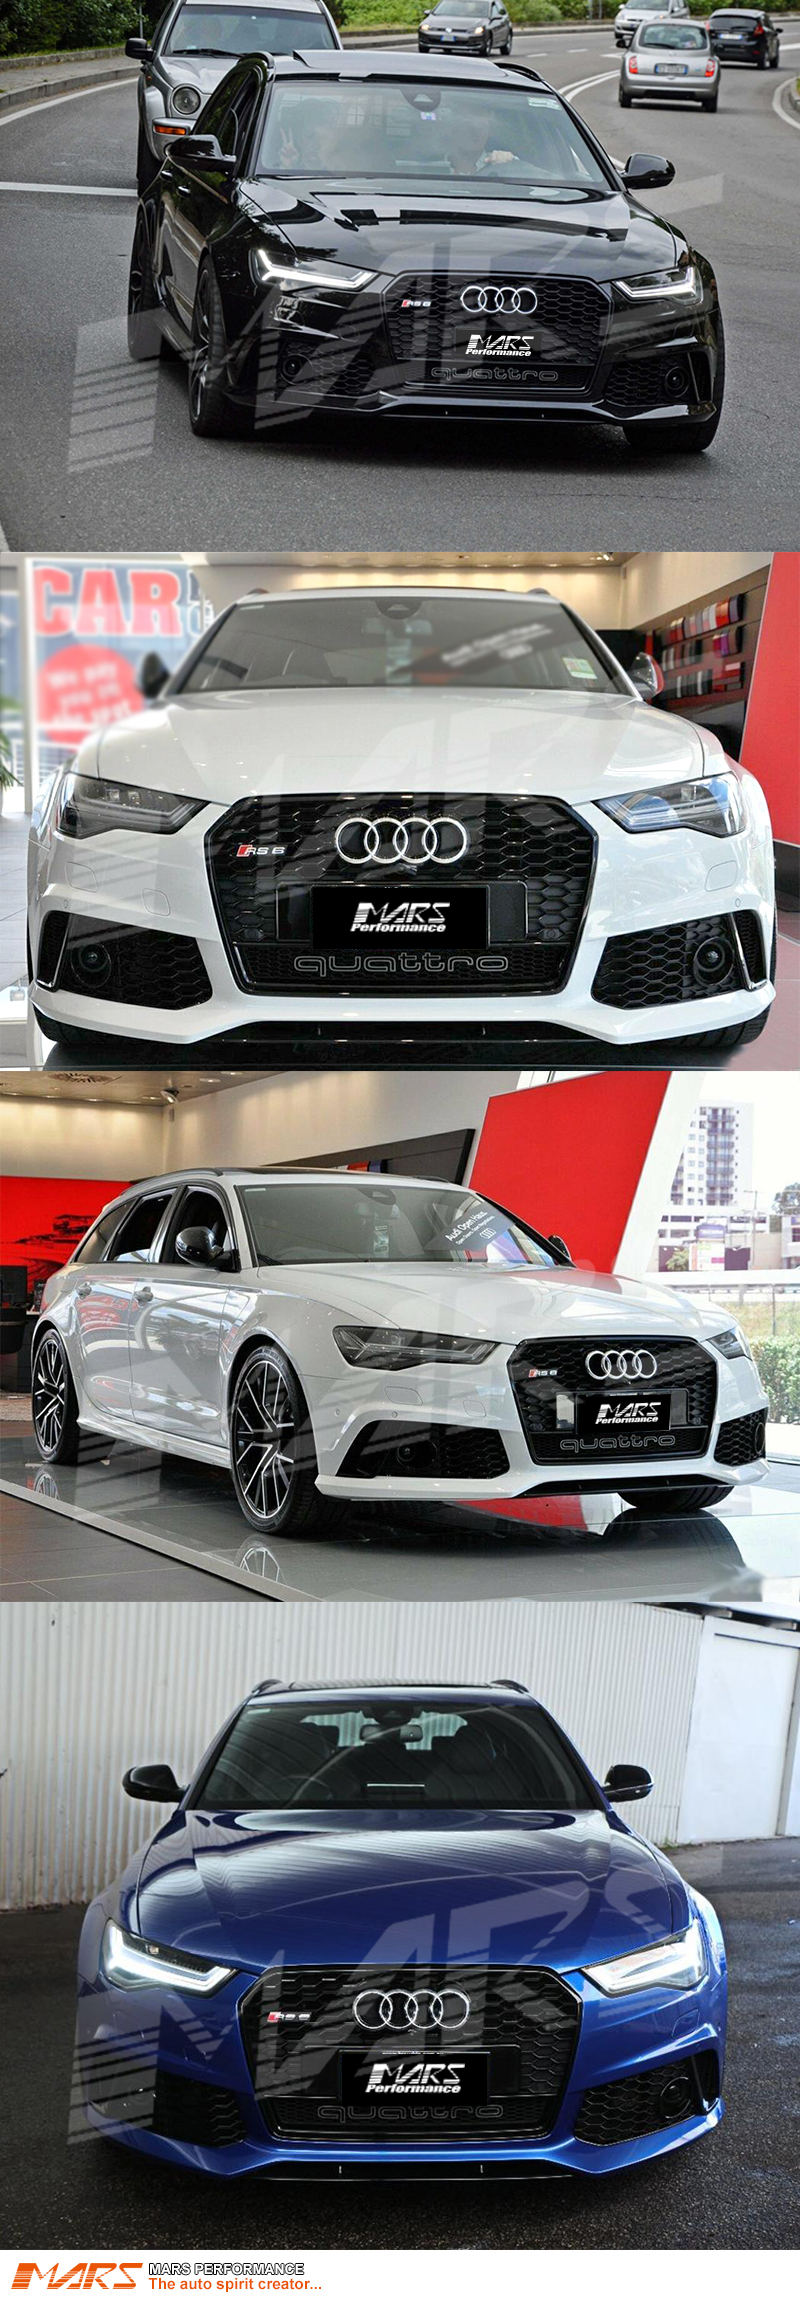 Gloss Black QUATTRO RS6 Style Front Bumper Bar Grille for AUDI A6 S6 on 2007 audi rs, audi tt coupe, audi a5 rs, audi s rs, audi q7 rs, audi quattro rs, 2005 audi rs, audi a7 rs, audi rs 10, audi rs6 avant usa, audi q5 rs, audi a8 rs, audi a4 wagon, 2001 audi rs, audi estate v1.0, audi tt rs, audi r8 rs, audi rs v10, audi a3 rs, audi rs 5 coupe,